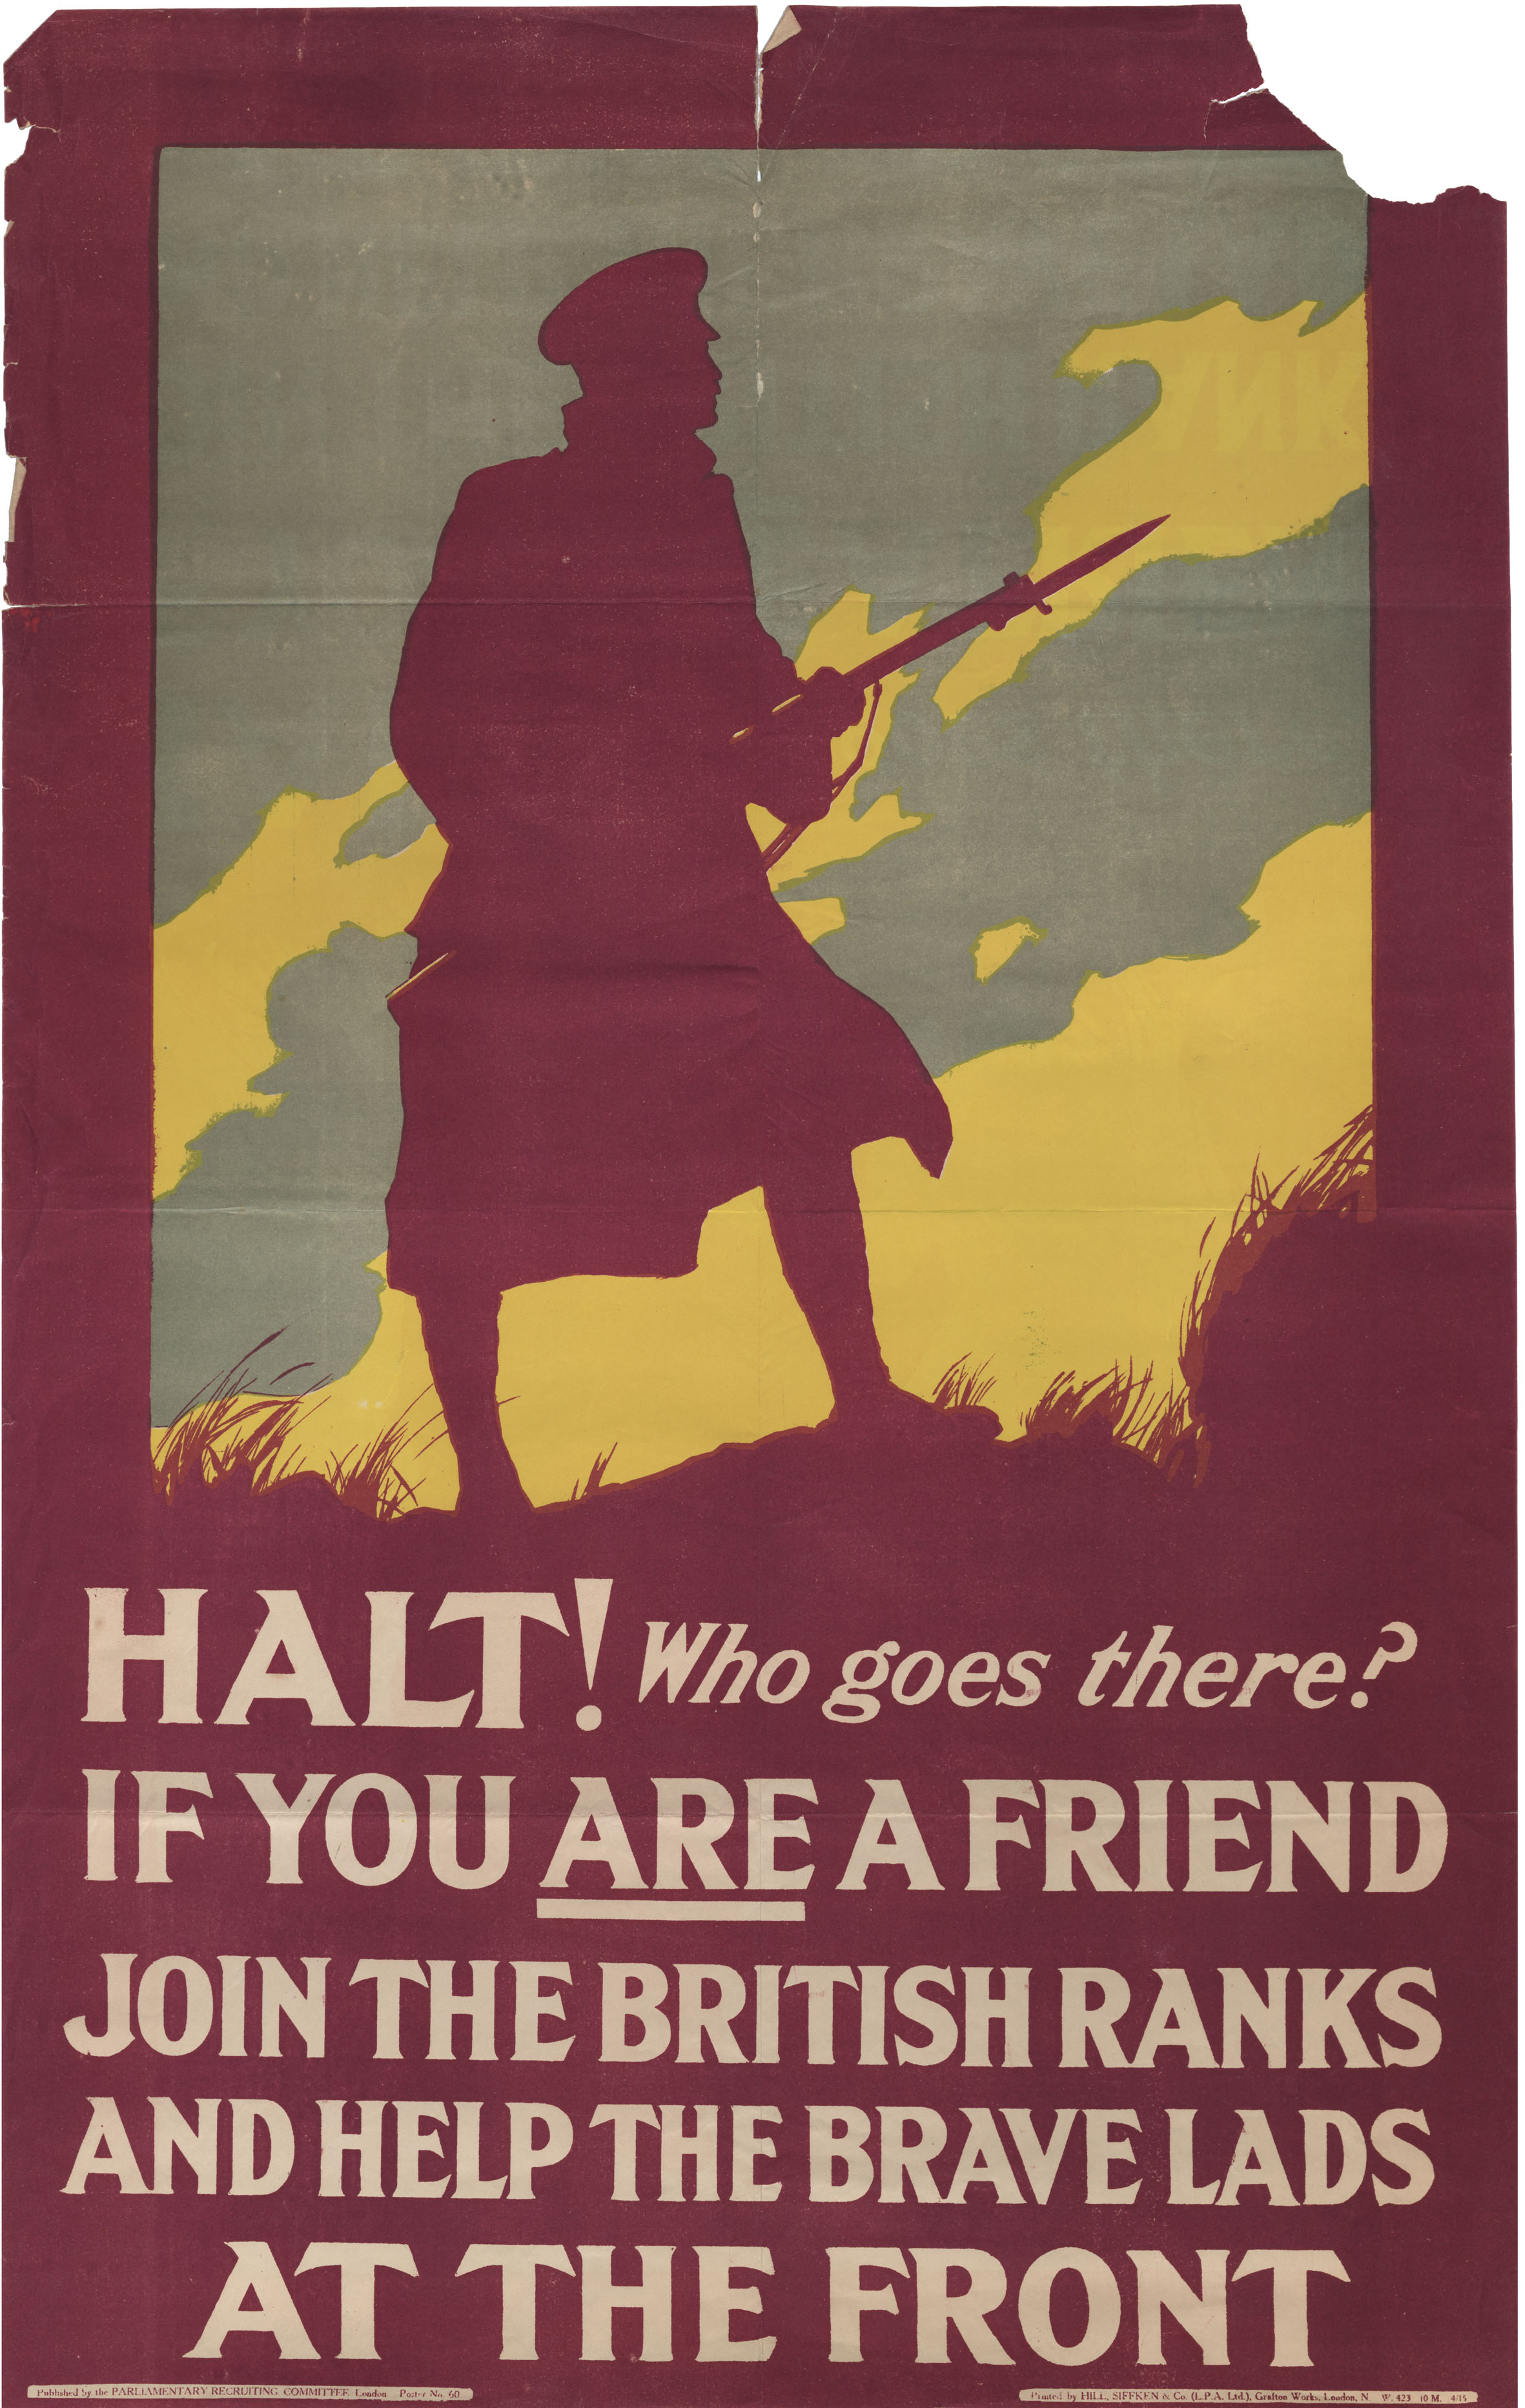 Halt! Who Goes There? If you are friend join the British ranks and help the brave lads at the front